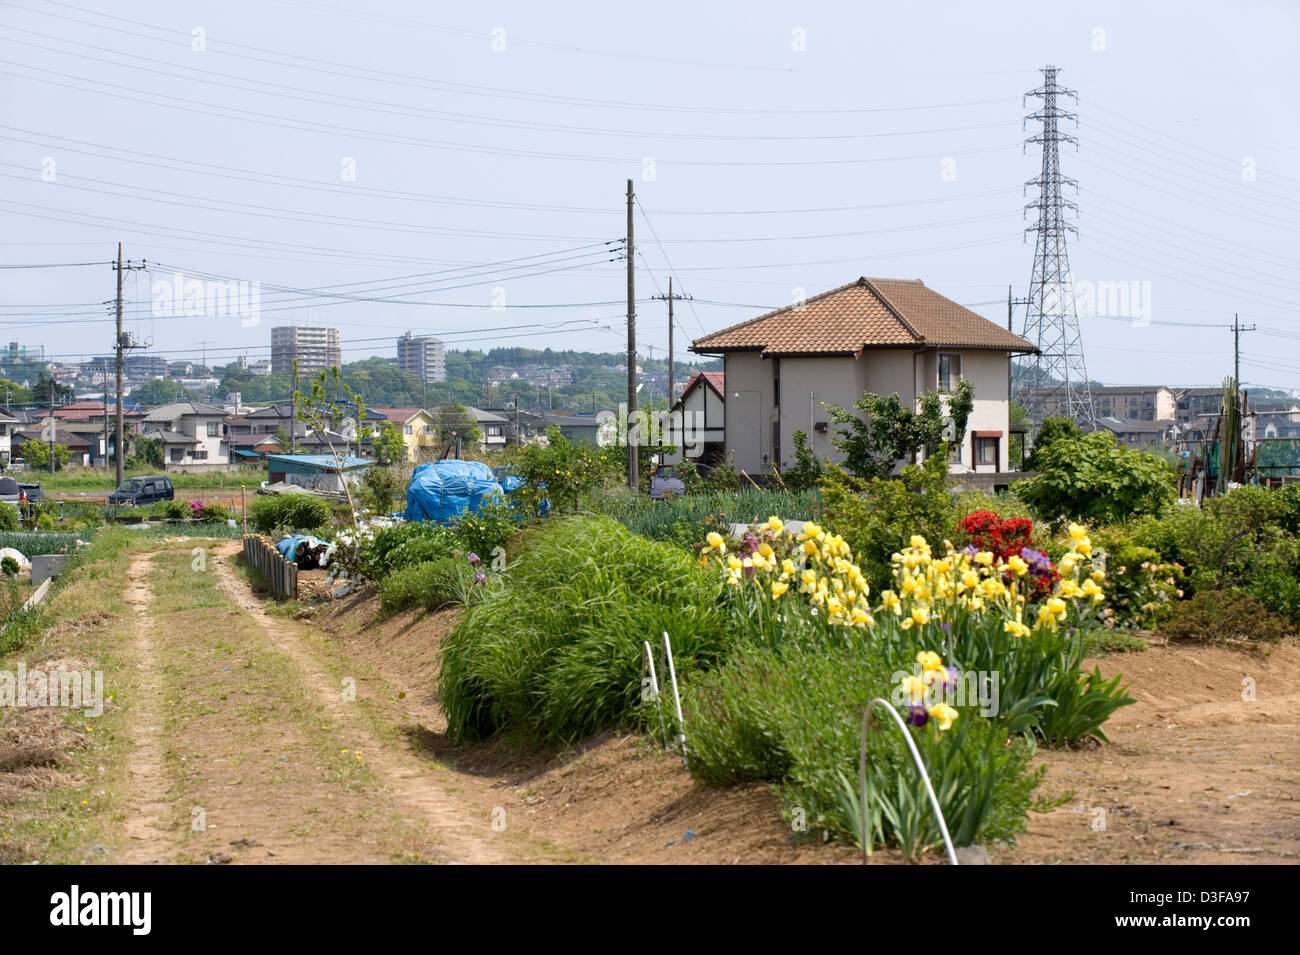 Vegetable and flower gardens contrast with high-tension power lines in the rural countryside of Kanagawa Prefecture. - Stock Image